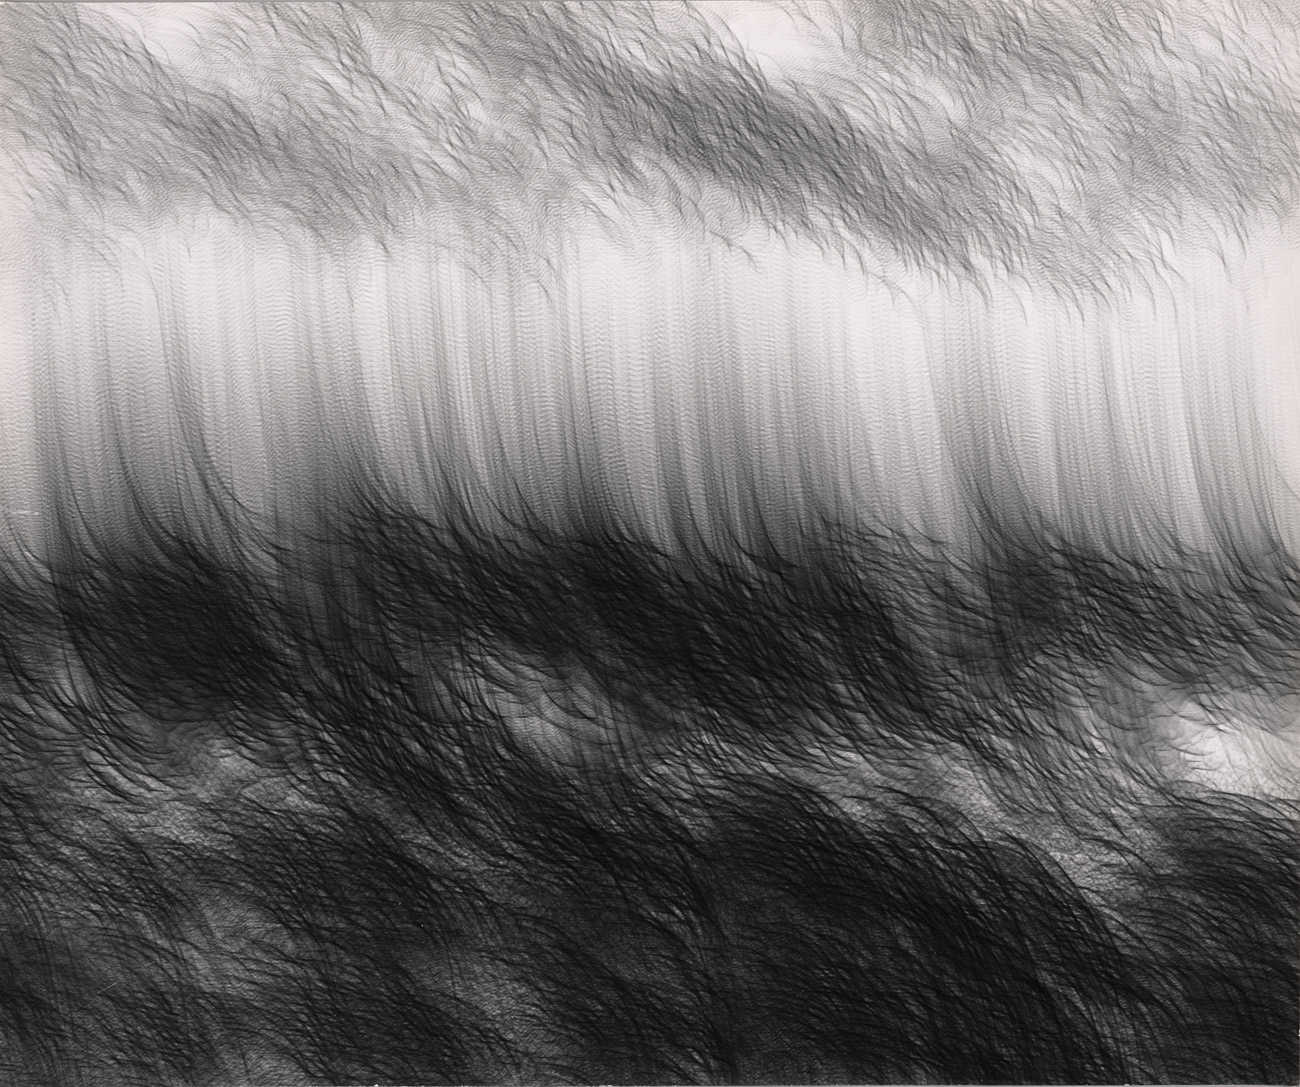 Abstract vertical lines that look like a stormy ocean